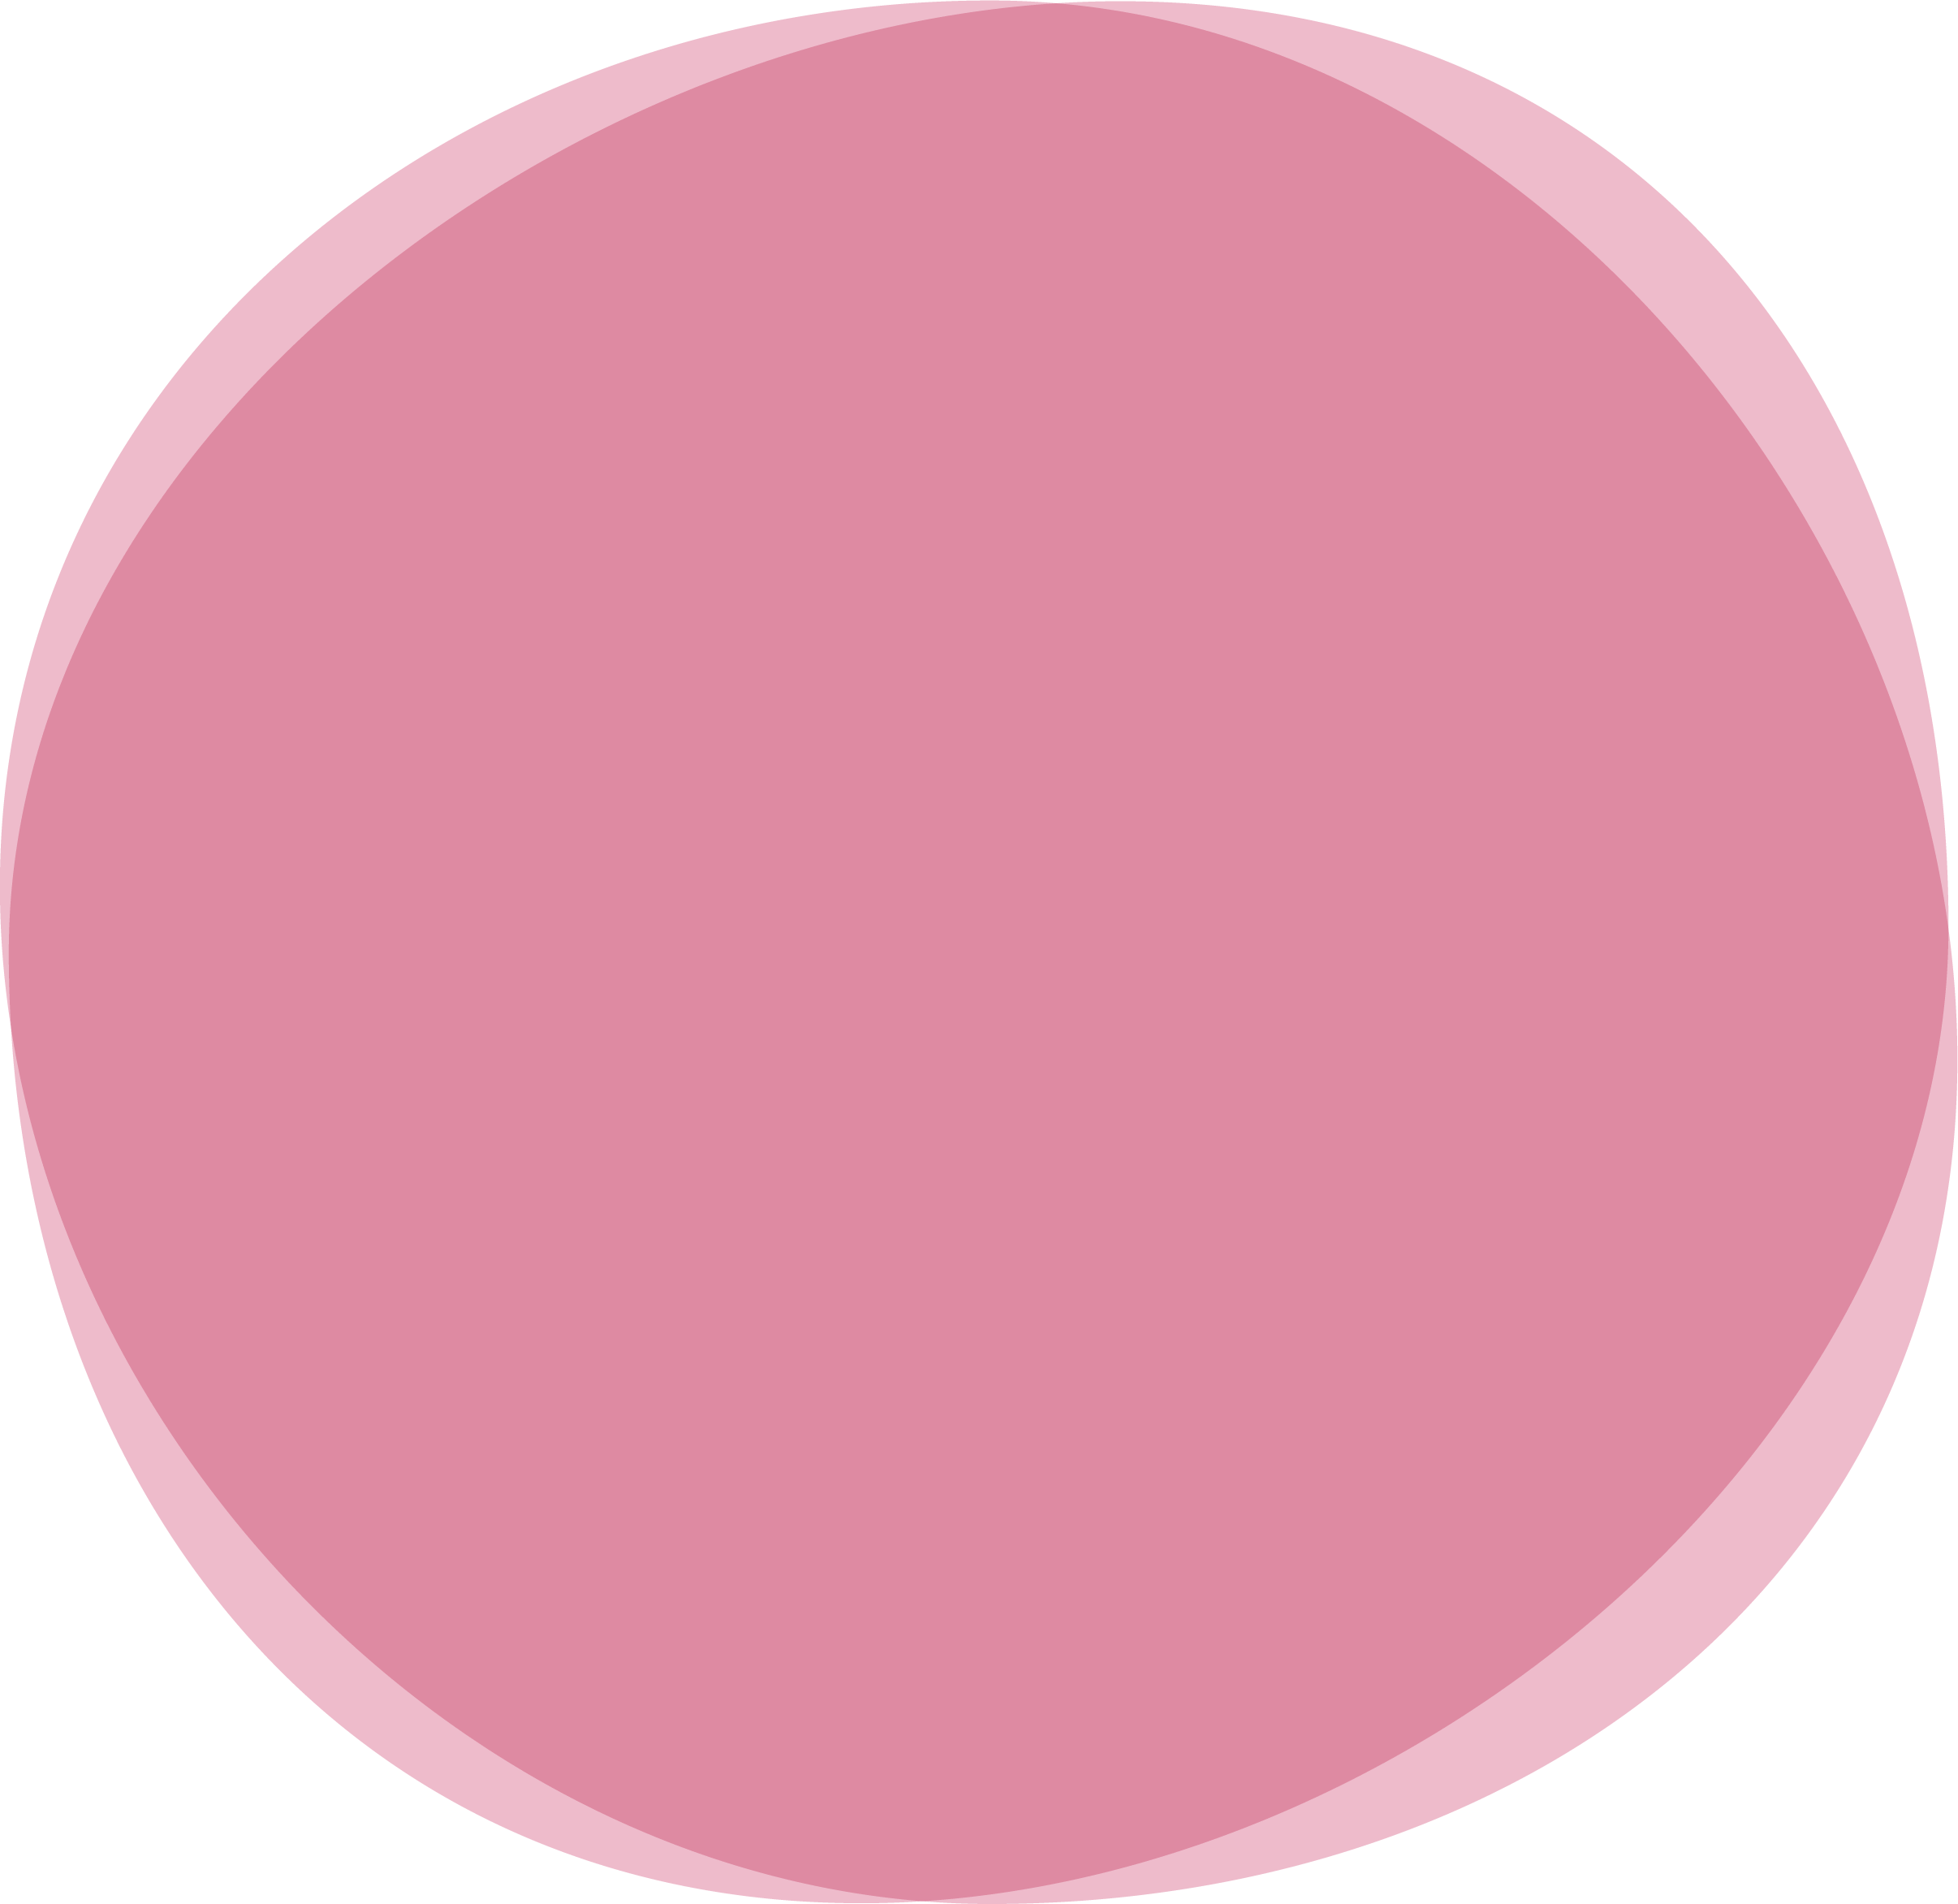 Rond rose